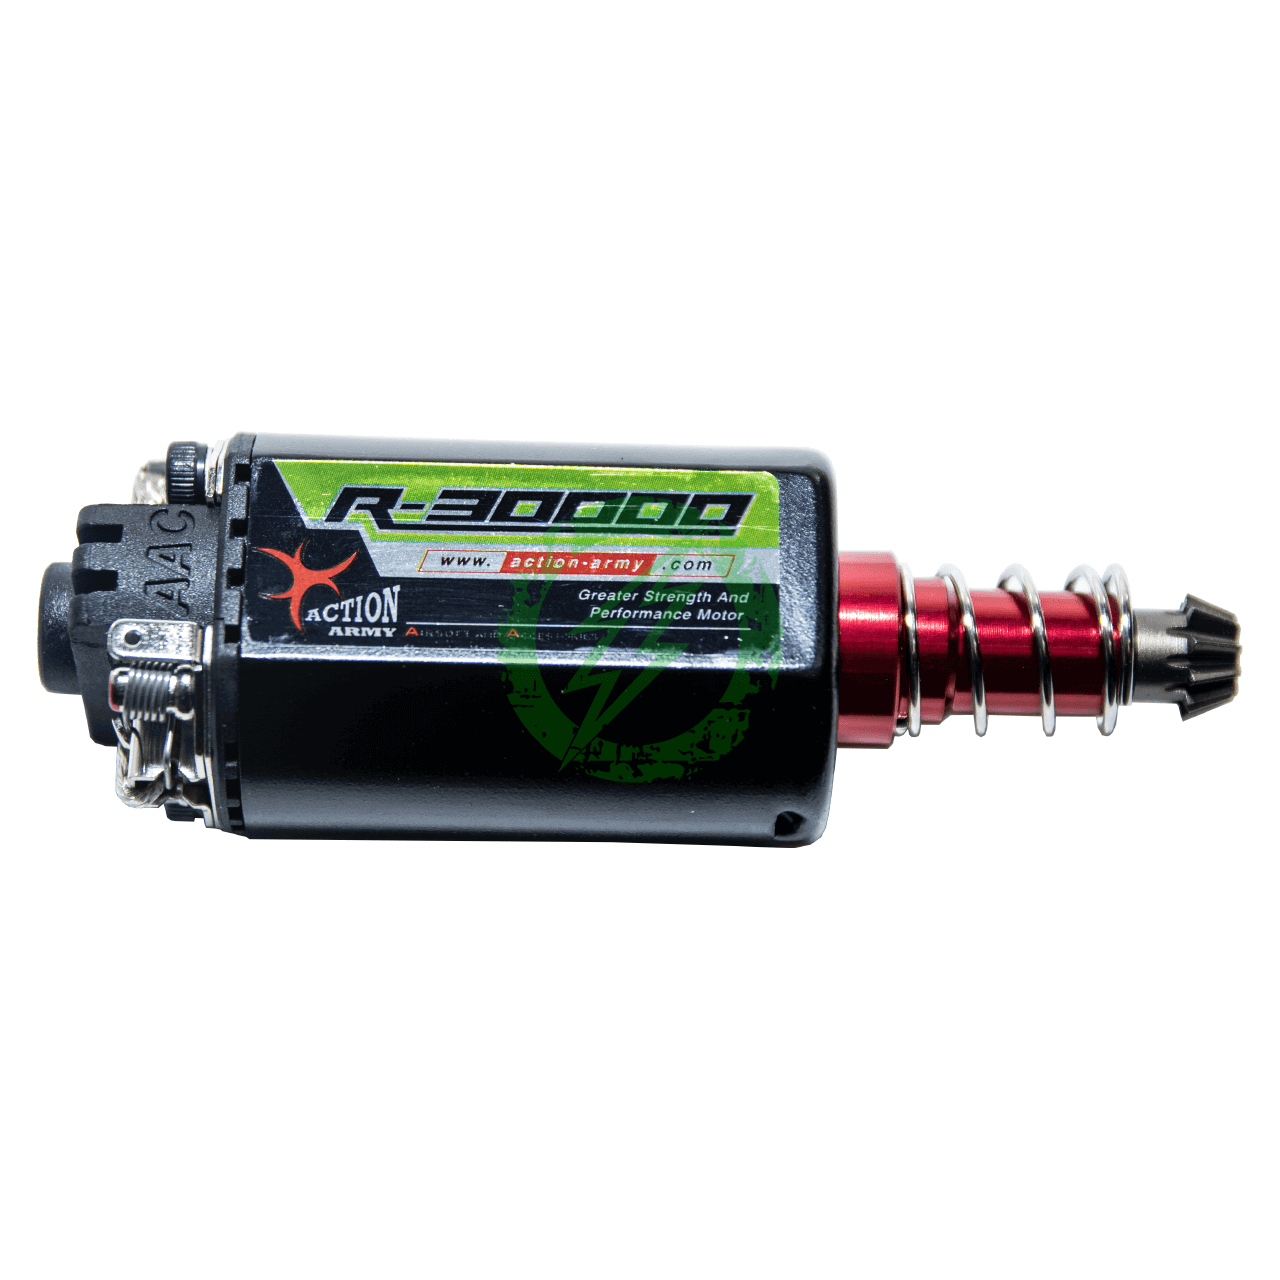 Action Army Infinity Long Axis Motor 30000